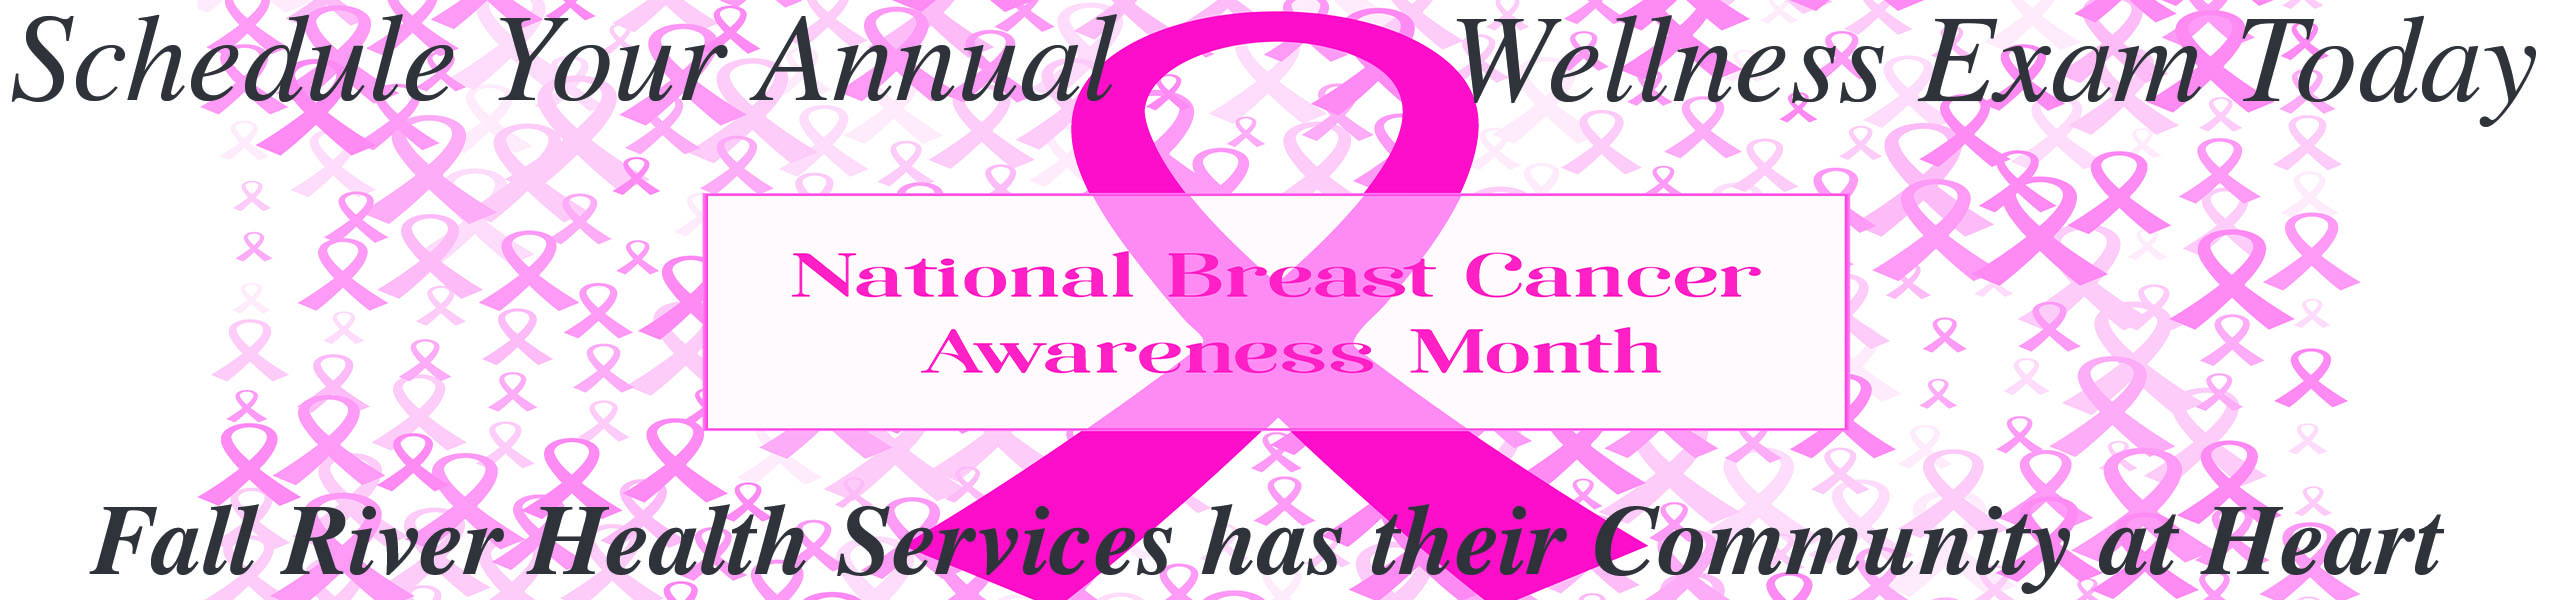 Picture of a lot of tiny Breast Cancer Ribbons in the background with a big bold Breast Cancer Ribbon centered  Banner says: Schedule Your Annual Wellness Exam Today  National Breast Cancer Awareness Month  Fall River Health Services has their Community at Heart